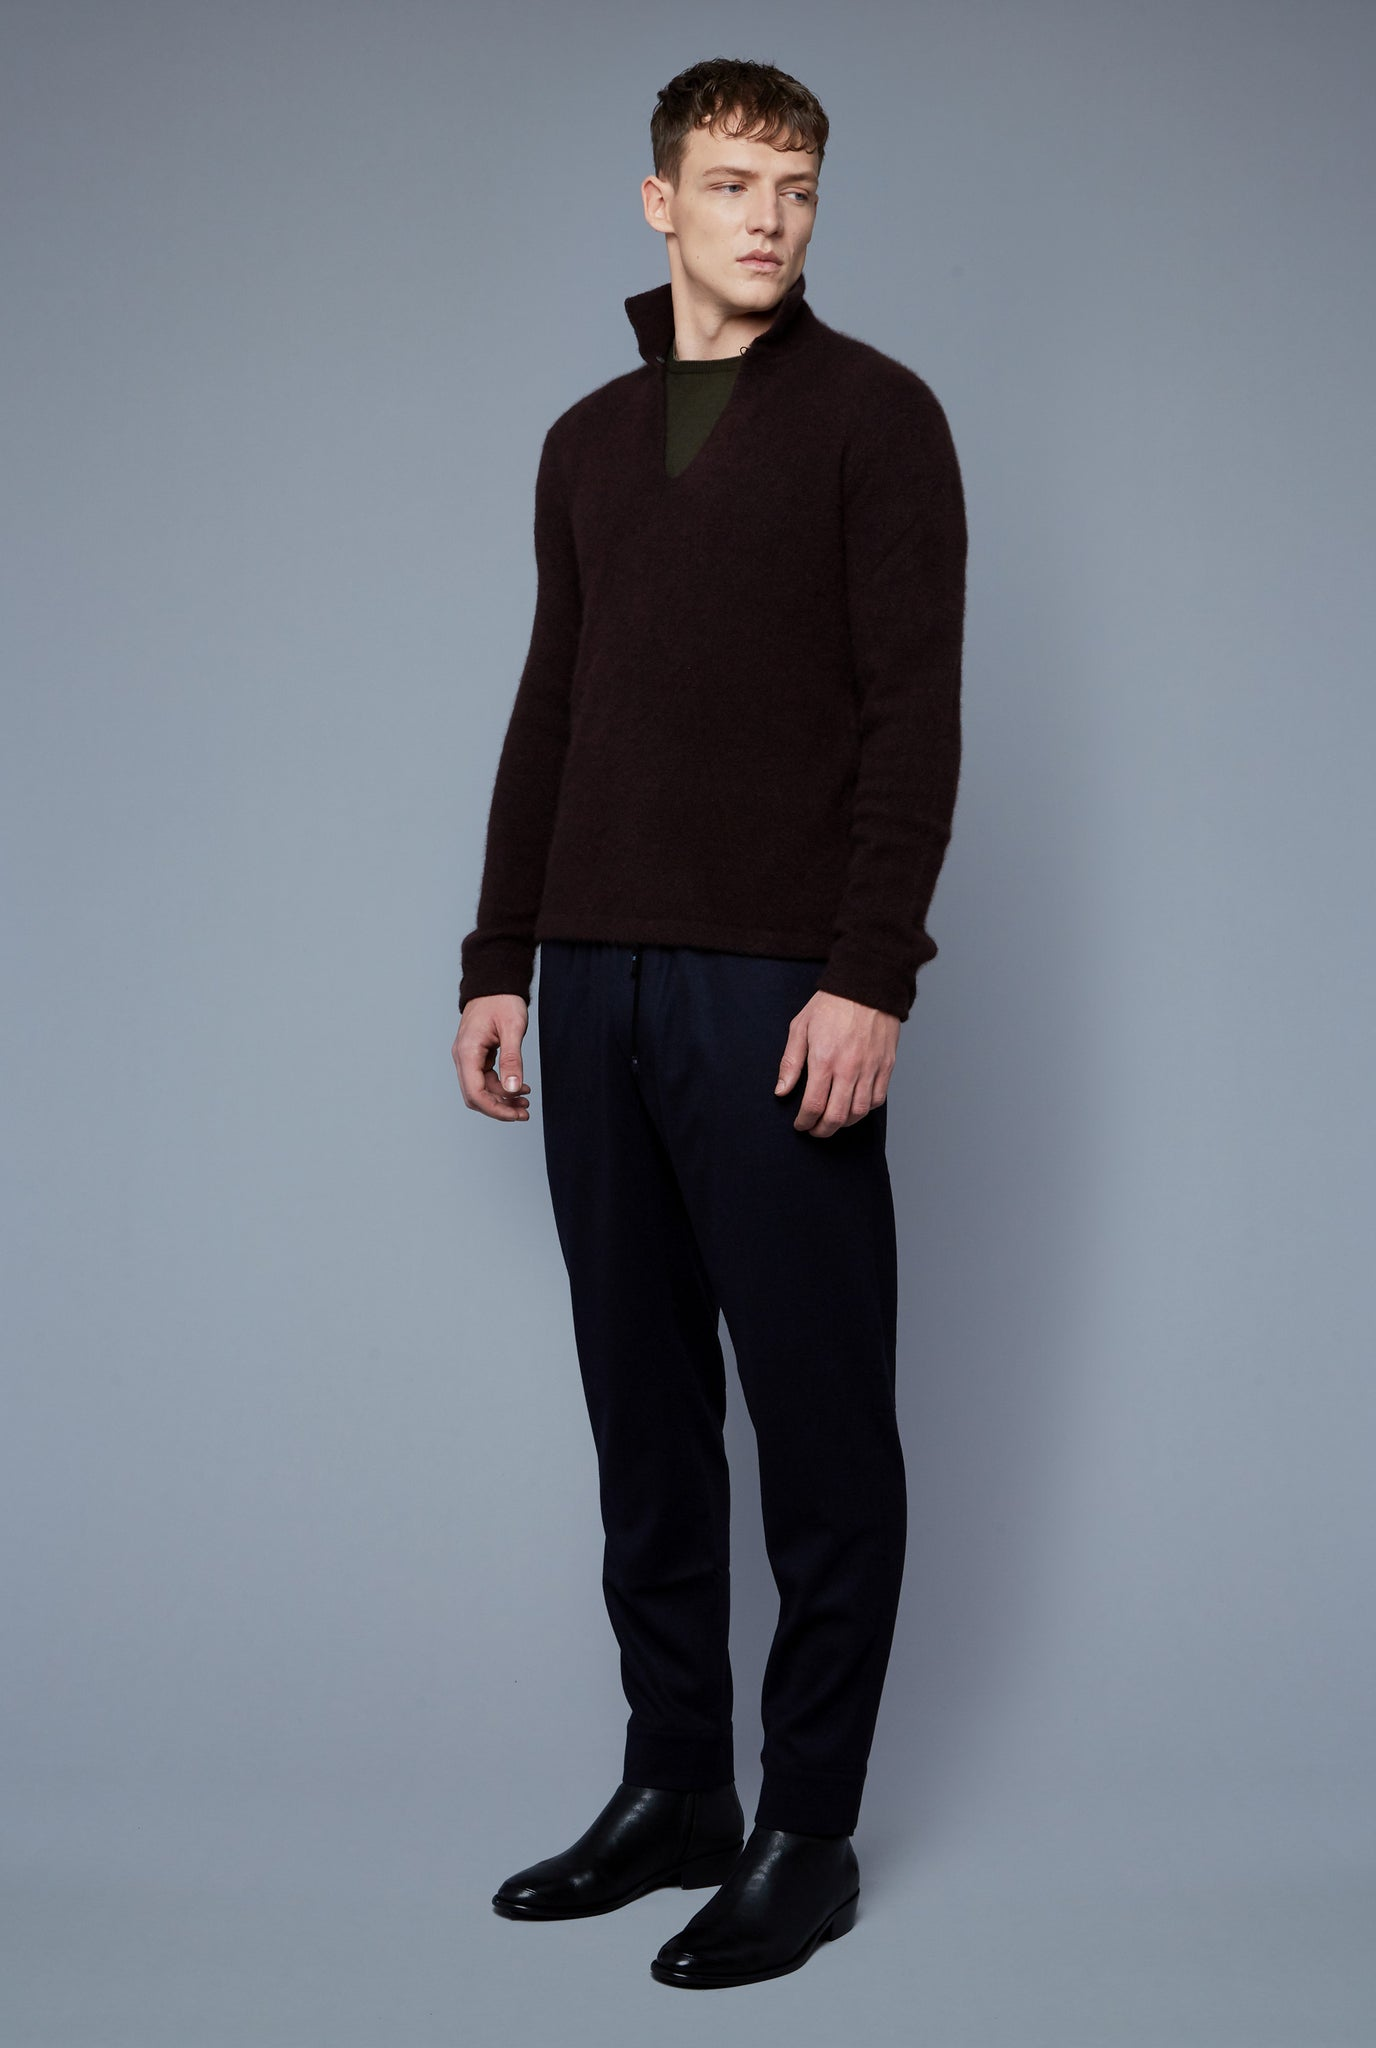 Three Quarter View: Model Milos Drago wearing Cashmere Boucle Sweater